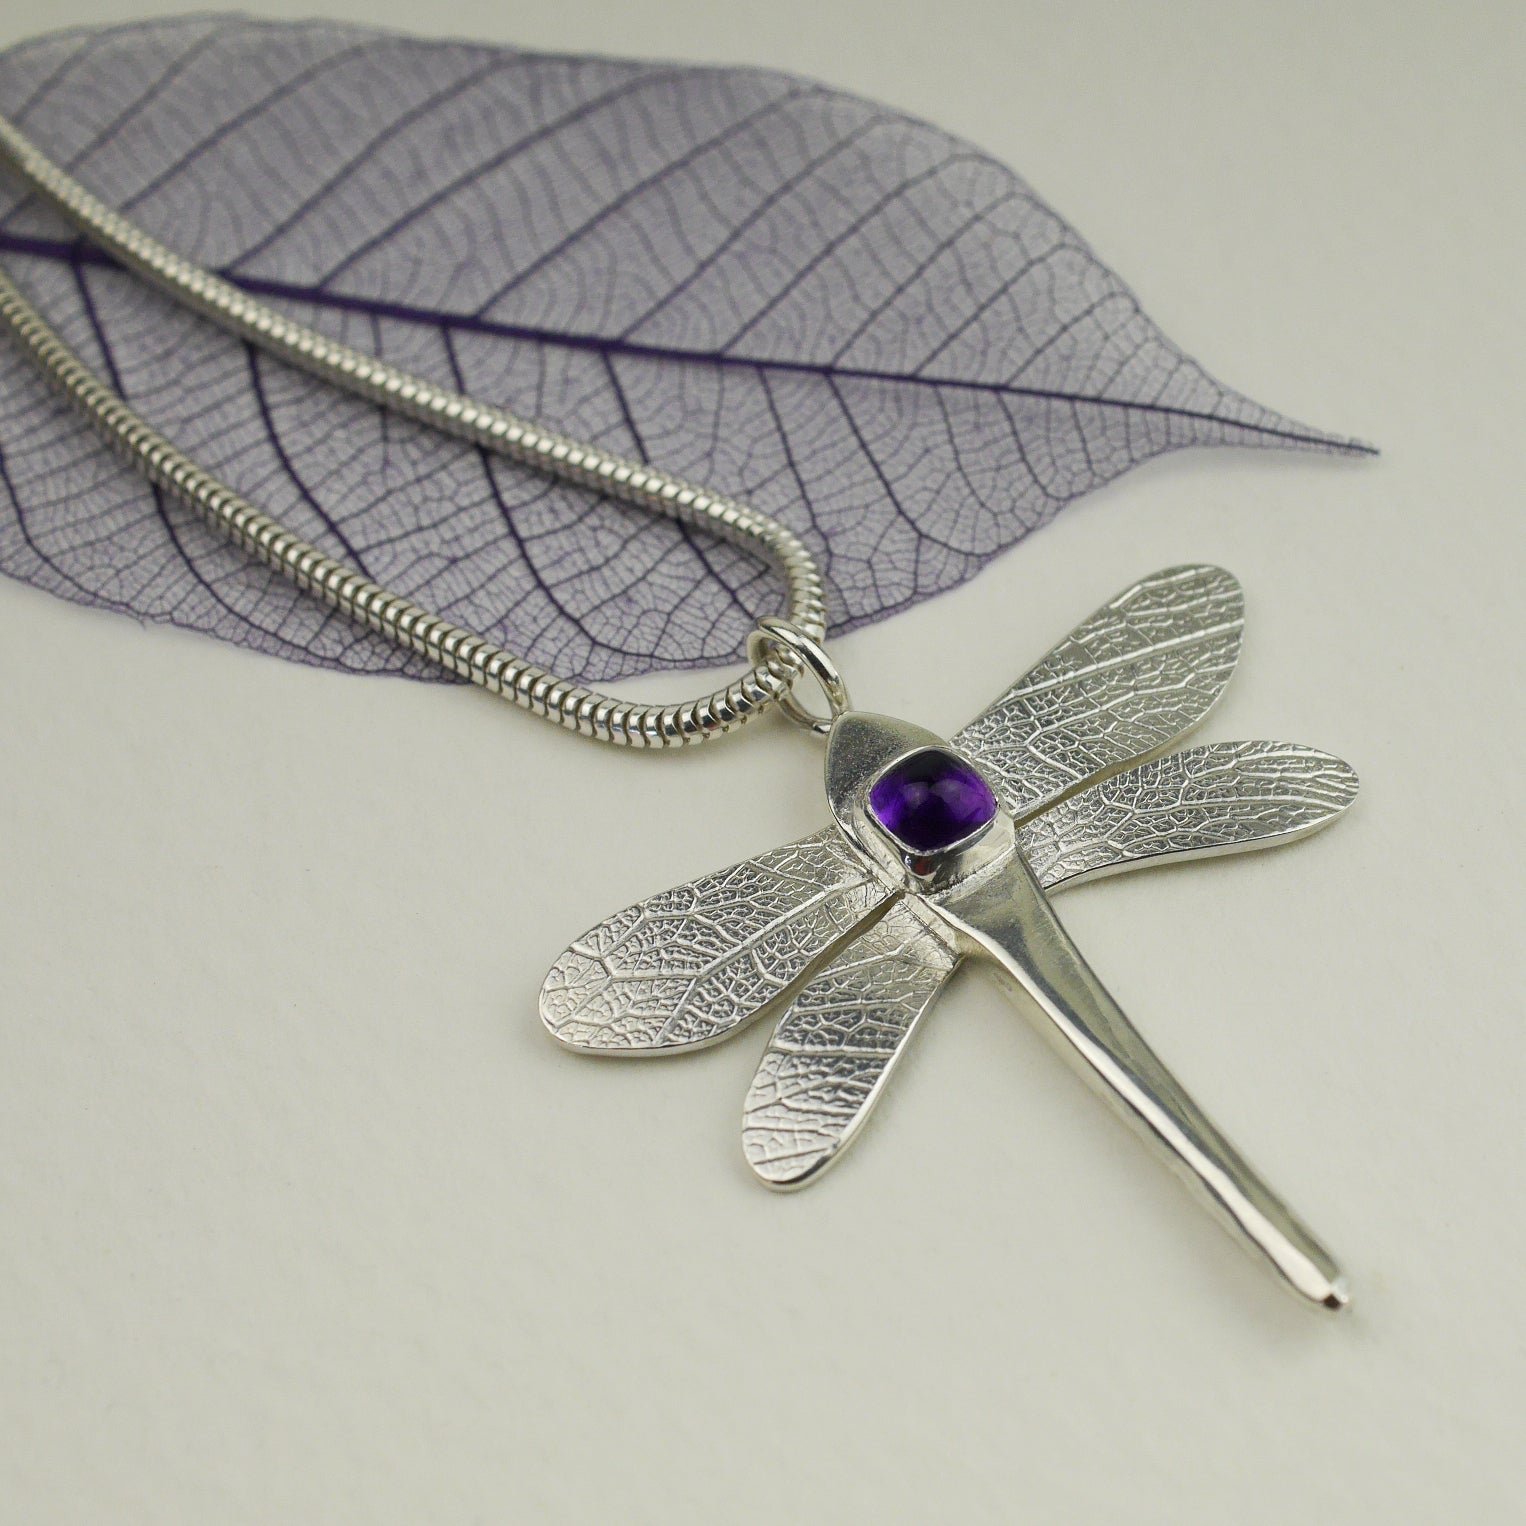 Completing the dragonfly pendant